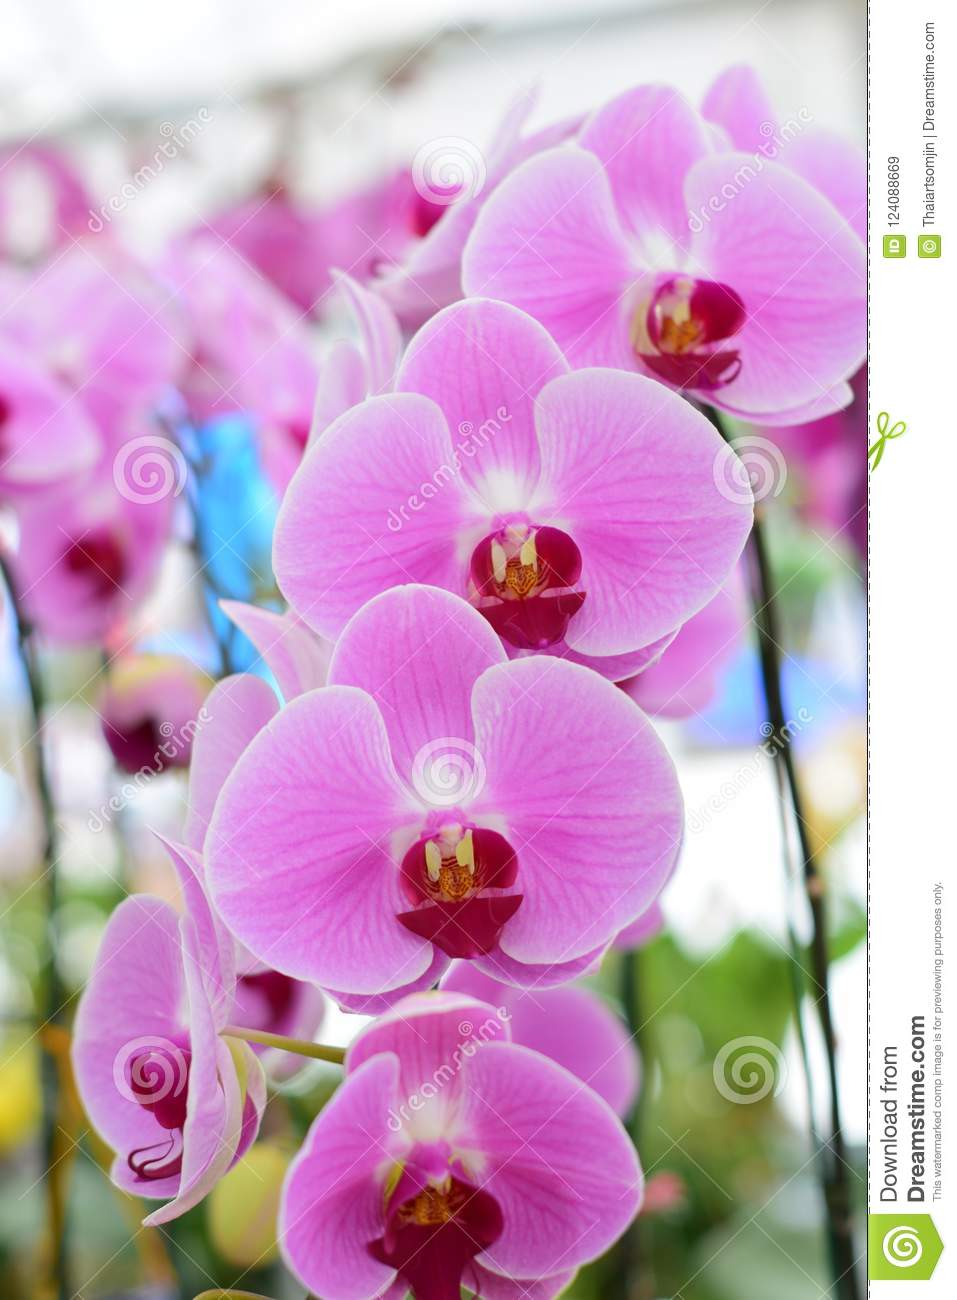 Beautiful orchid flowers stock image image of closeup 124088669 download beautiful orchid flowers stock image image of closeup 124088669 izmirmasajfo